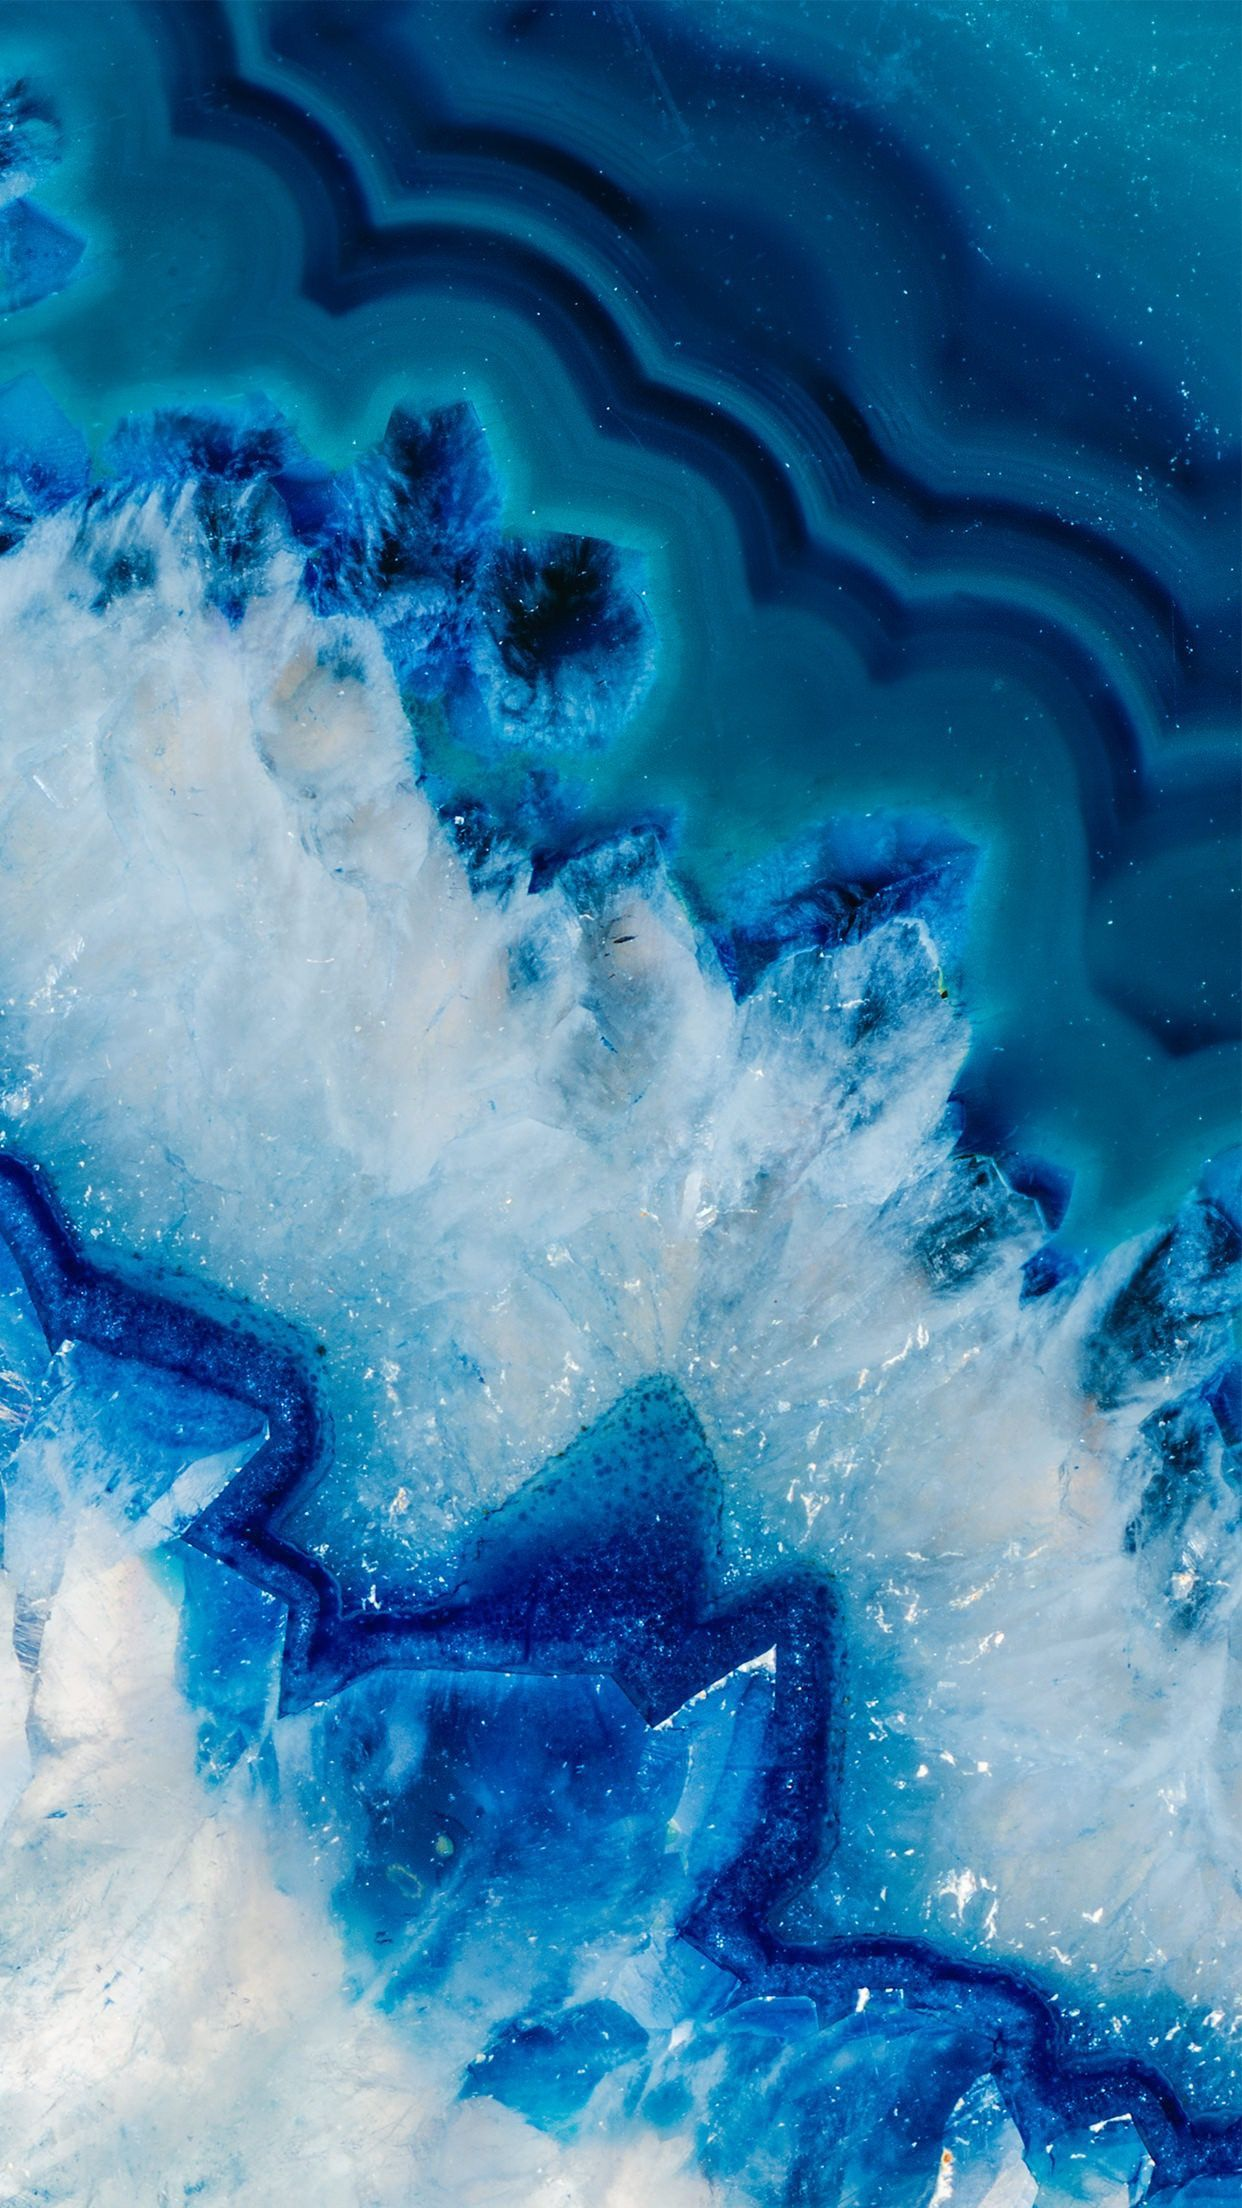 Blue Geode Wallpapers - Top Free Blue Geode Backgrounds ...